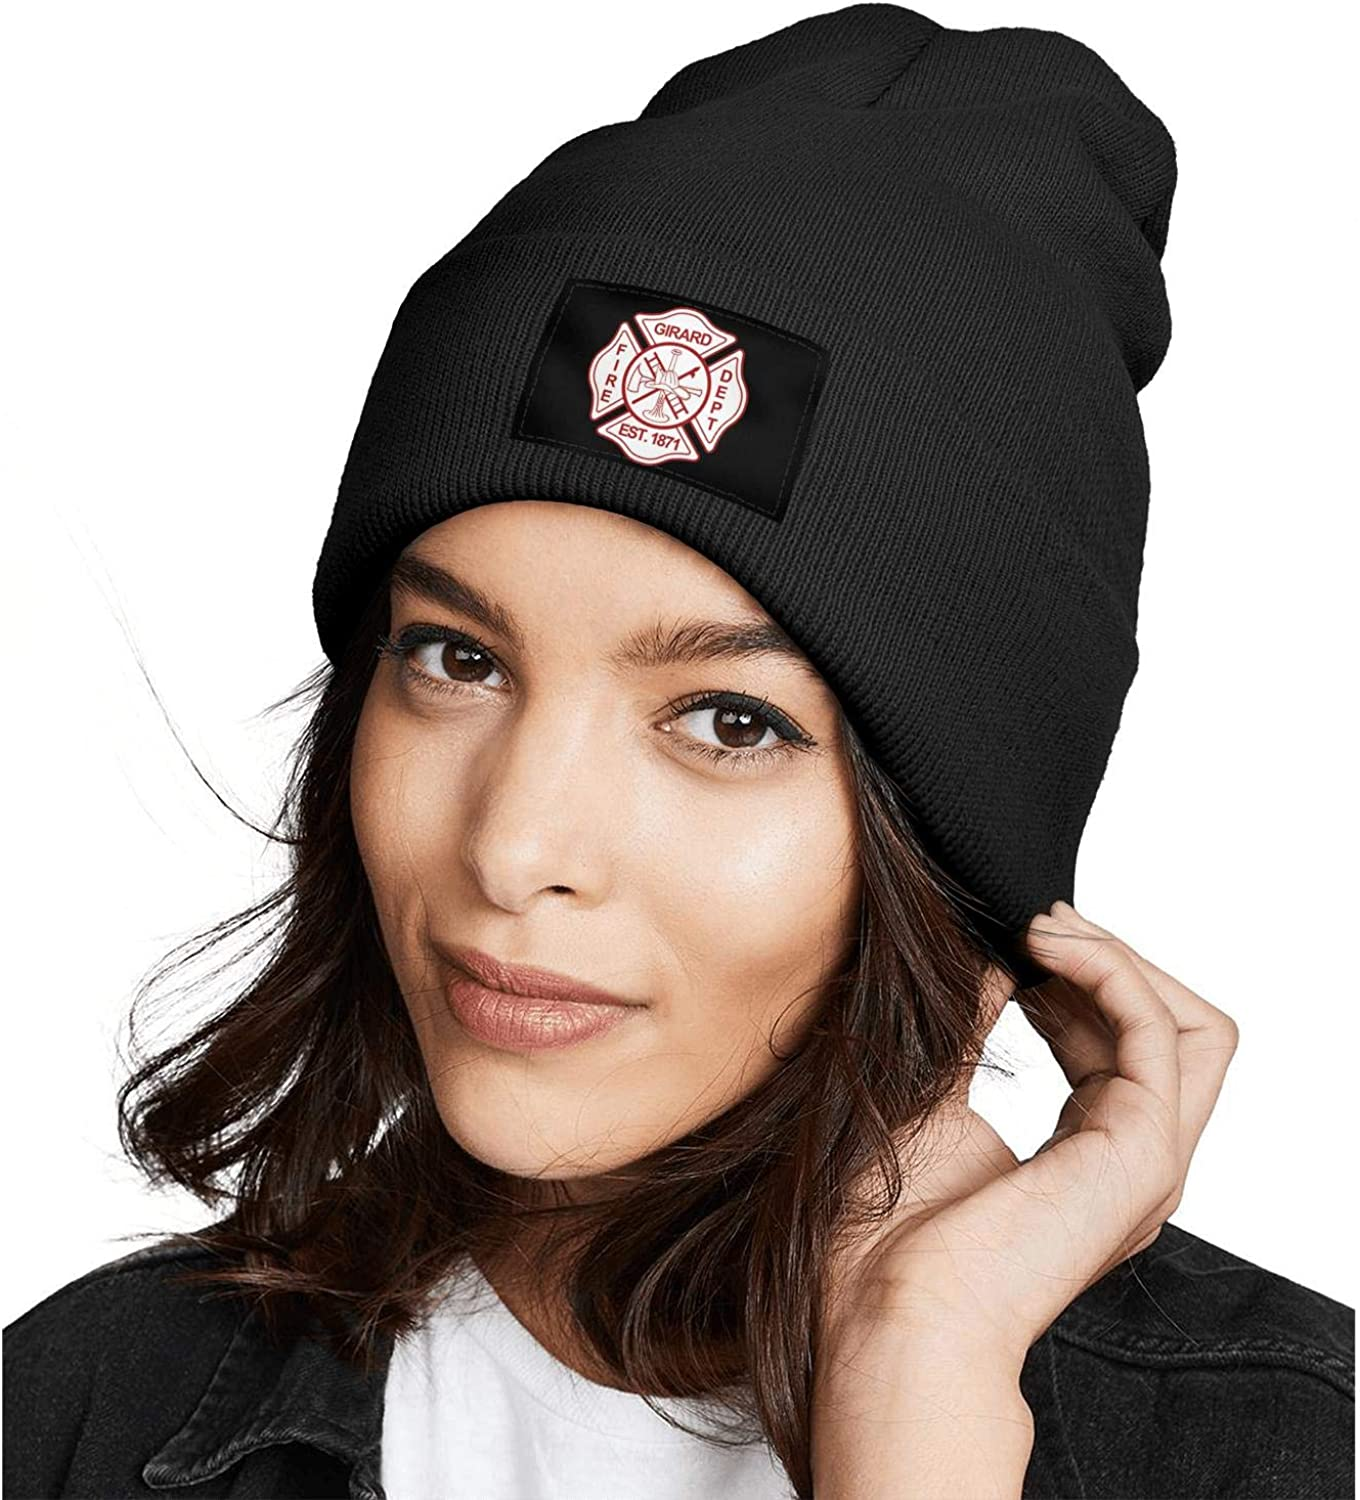 DXQIANG Kilgore-Fire-Department Men Women Winter Beanies Hat Multifunction Skull Knit Cap